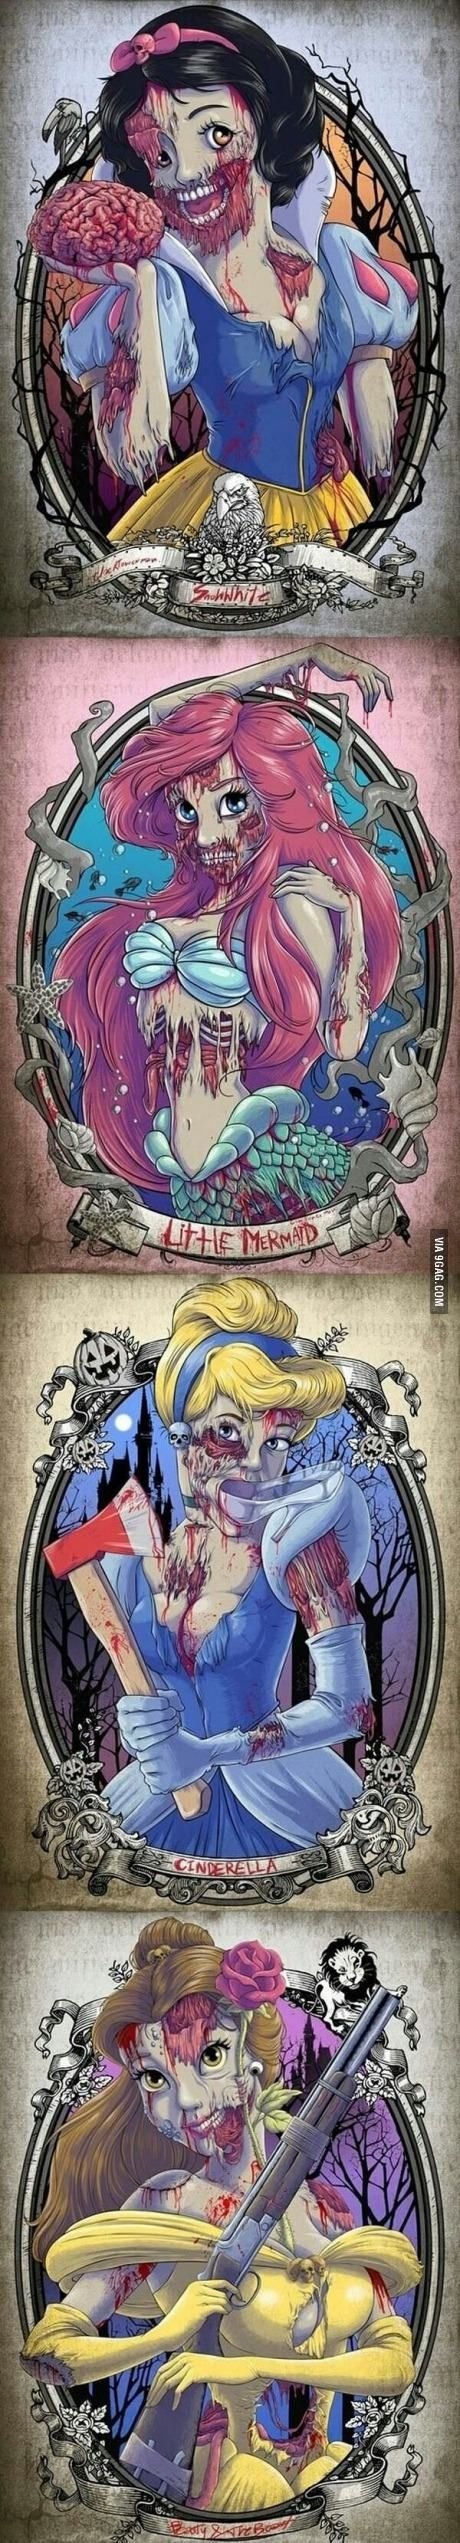 Creepy Disney Princesses.  I saw a guy at Disneyland with Snow White print on a tee.  I thought it was cool and creepy